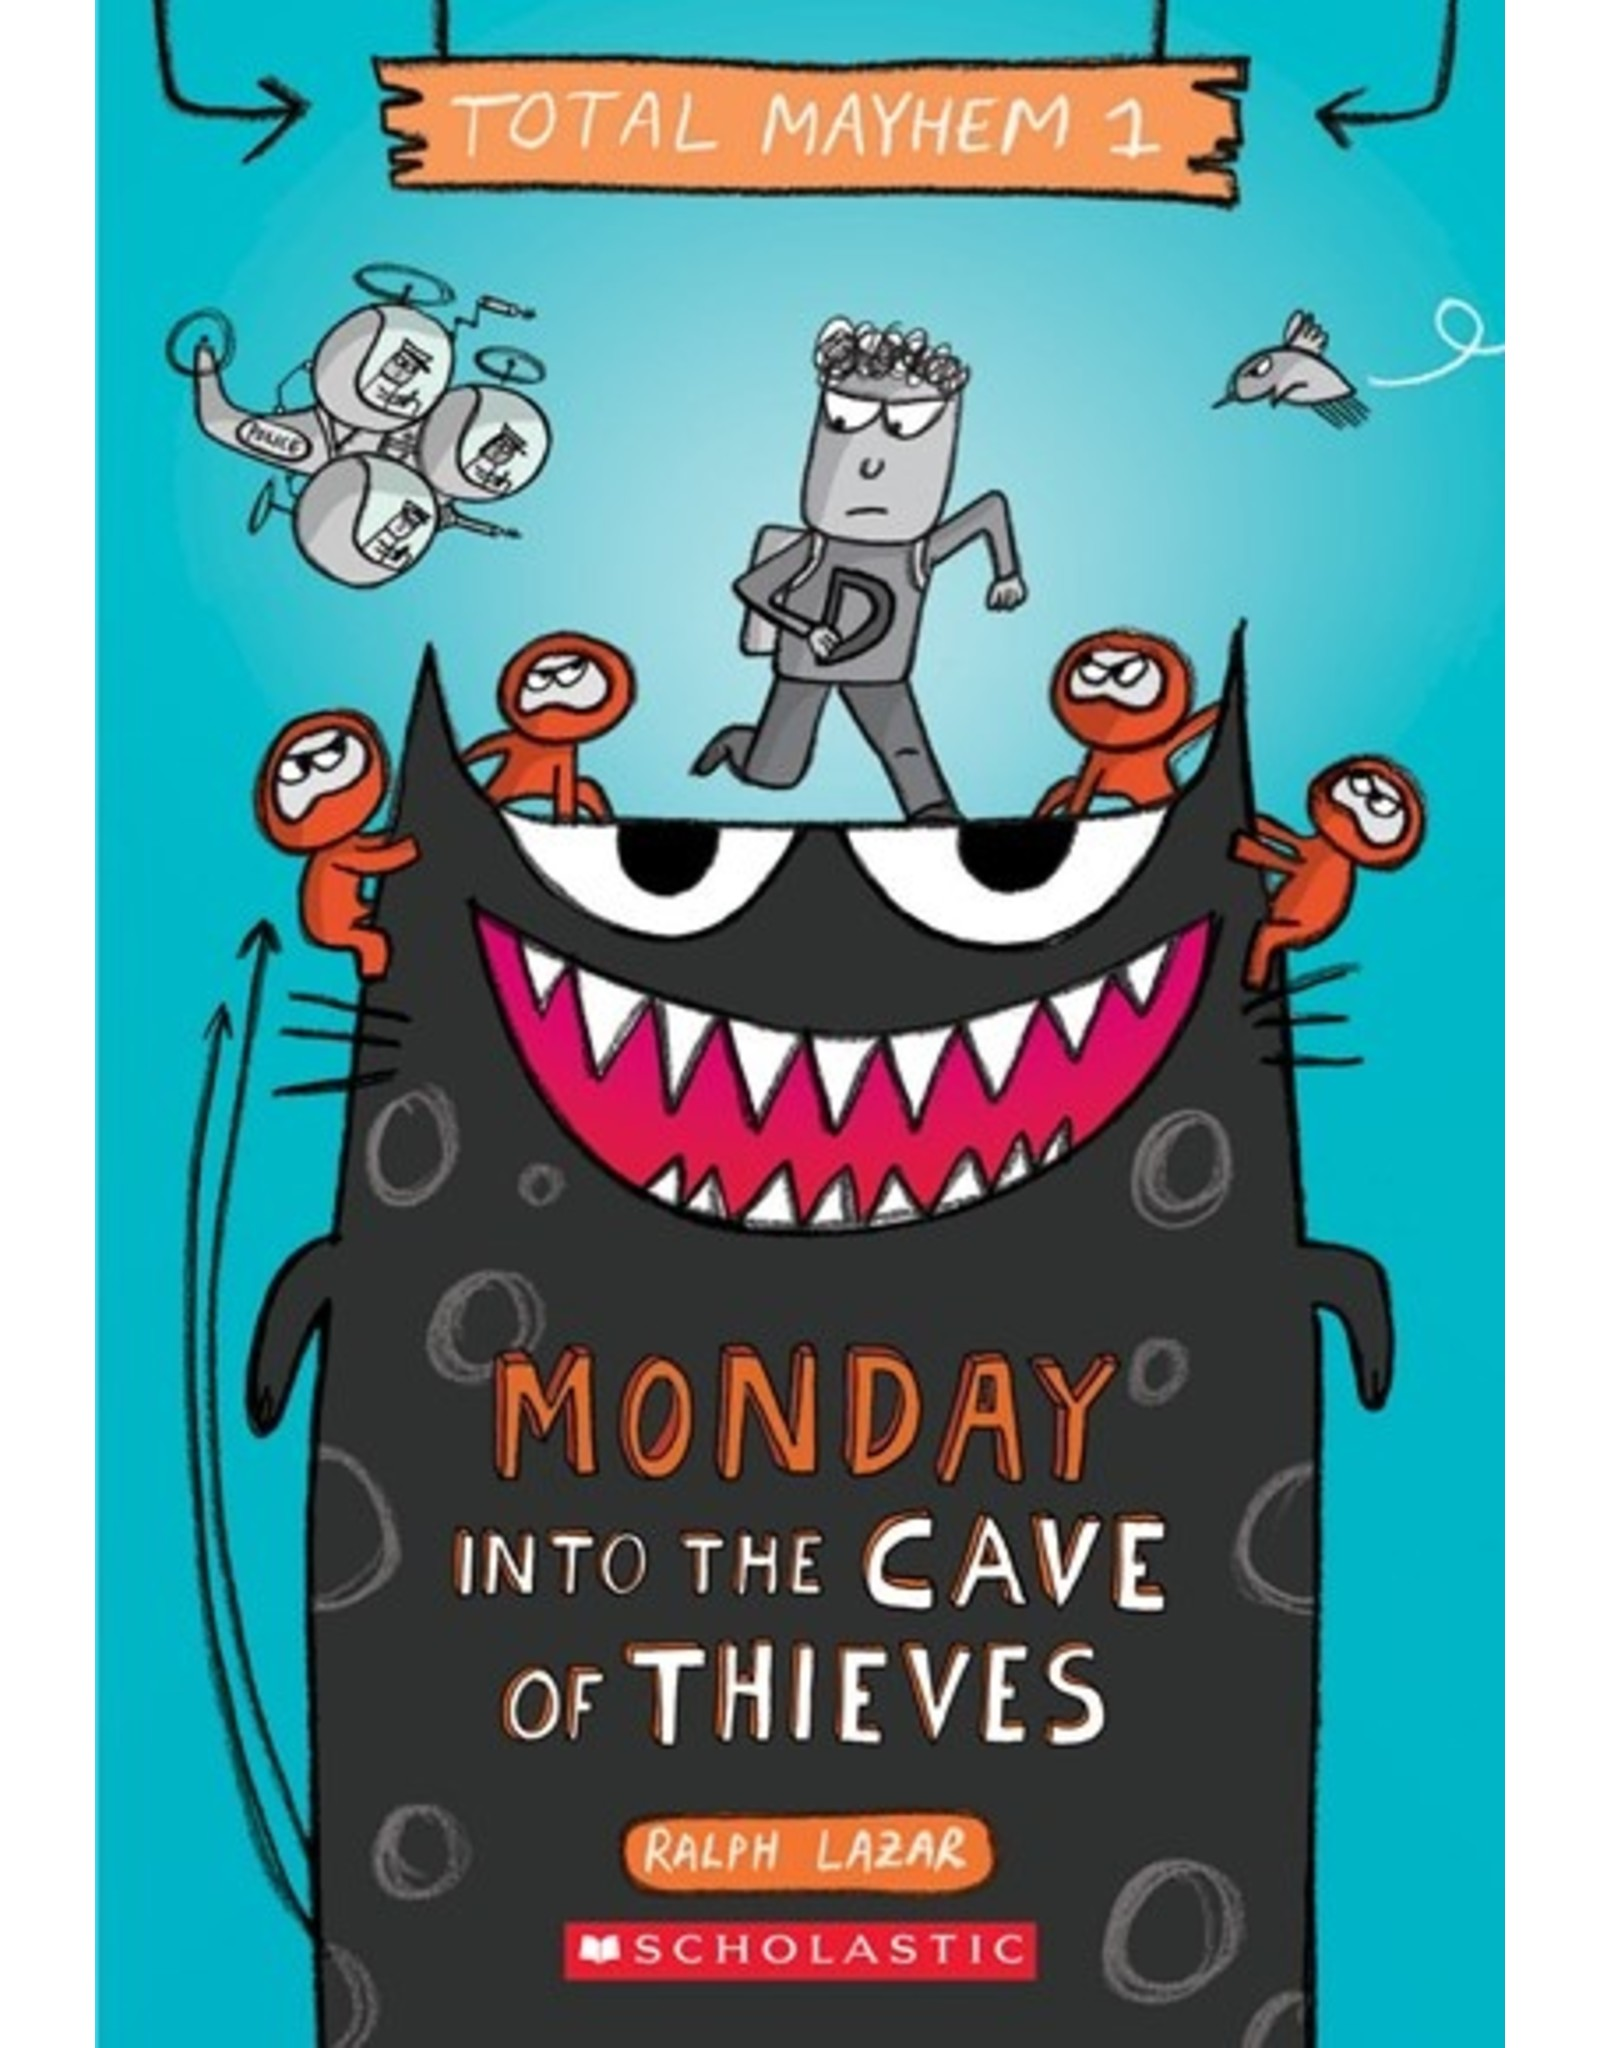 Books Total Mayhem #1 Monday into the Cave of Thieves by Ralph Lazar (Holiday Catalog 21)